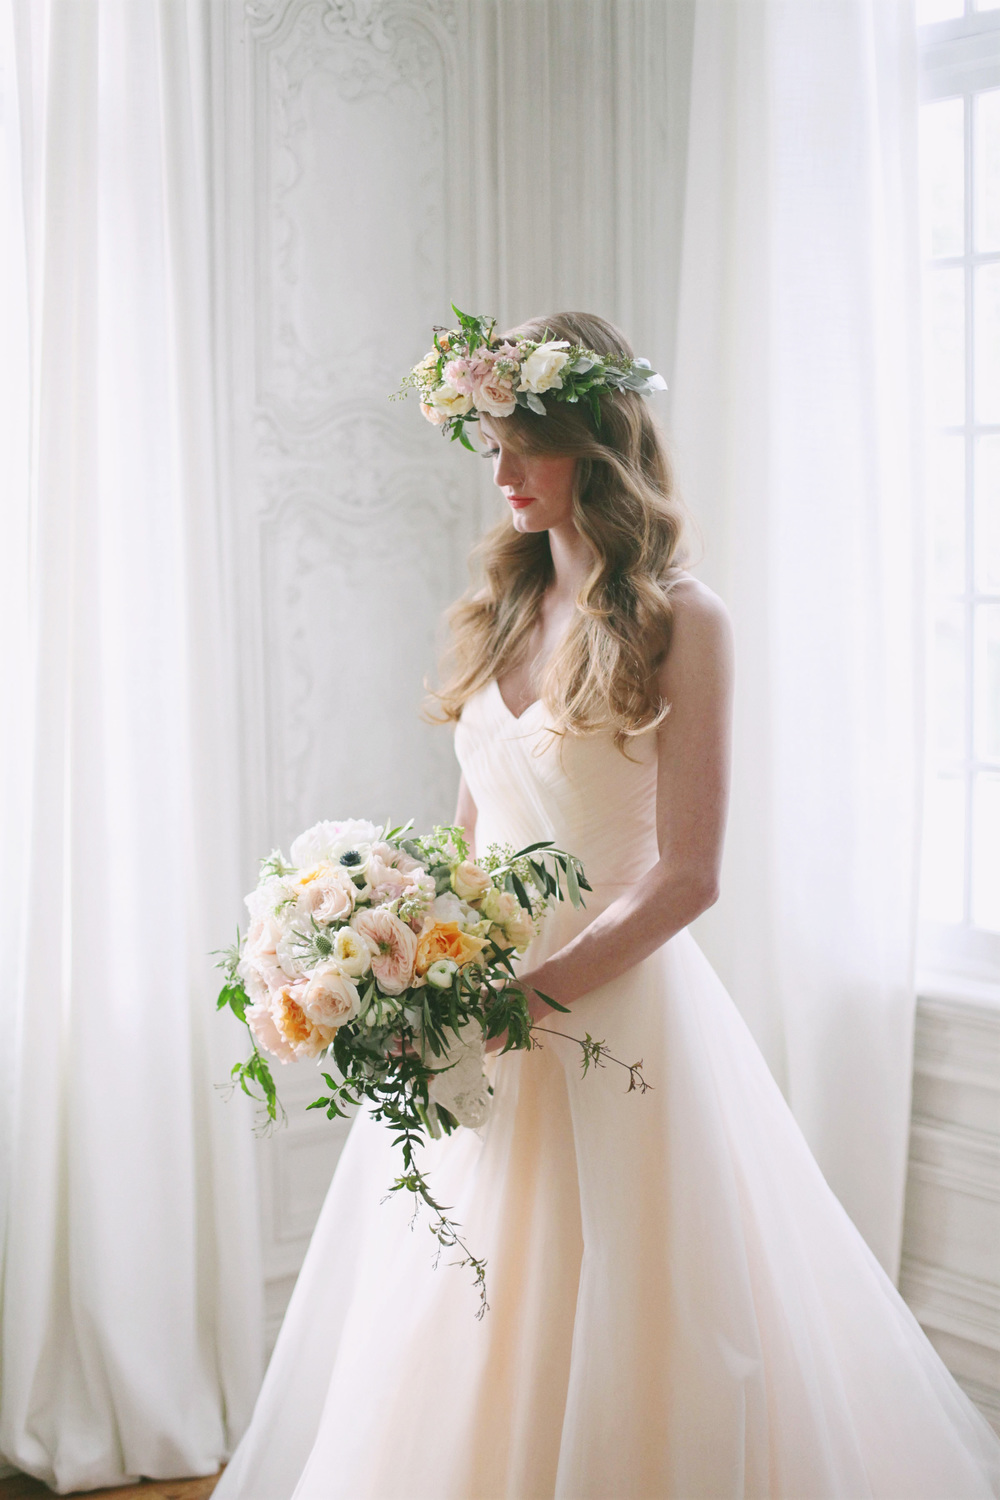 Spring Chateau Wedding Inspiration | Jacque Lynn Photography | Michelle Leo Events | Utah Wedding and Event Design